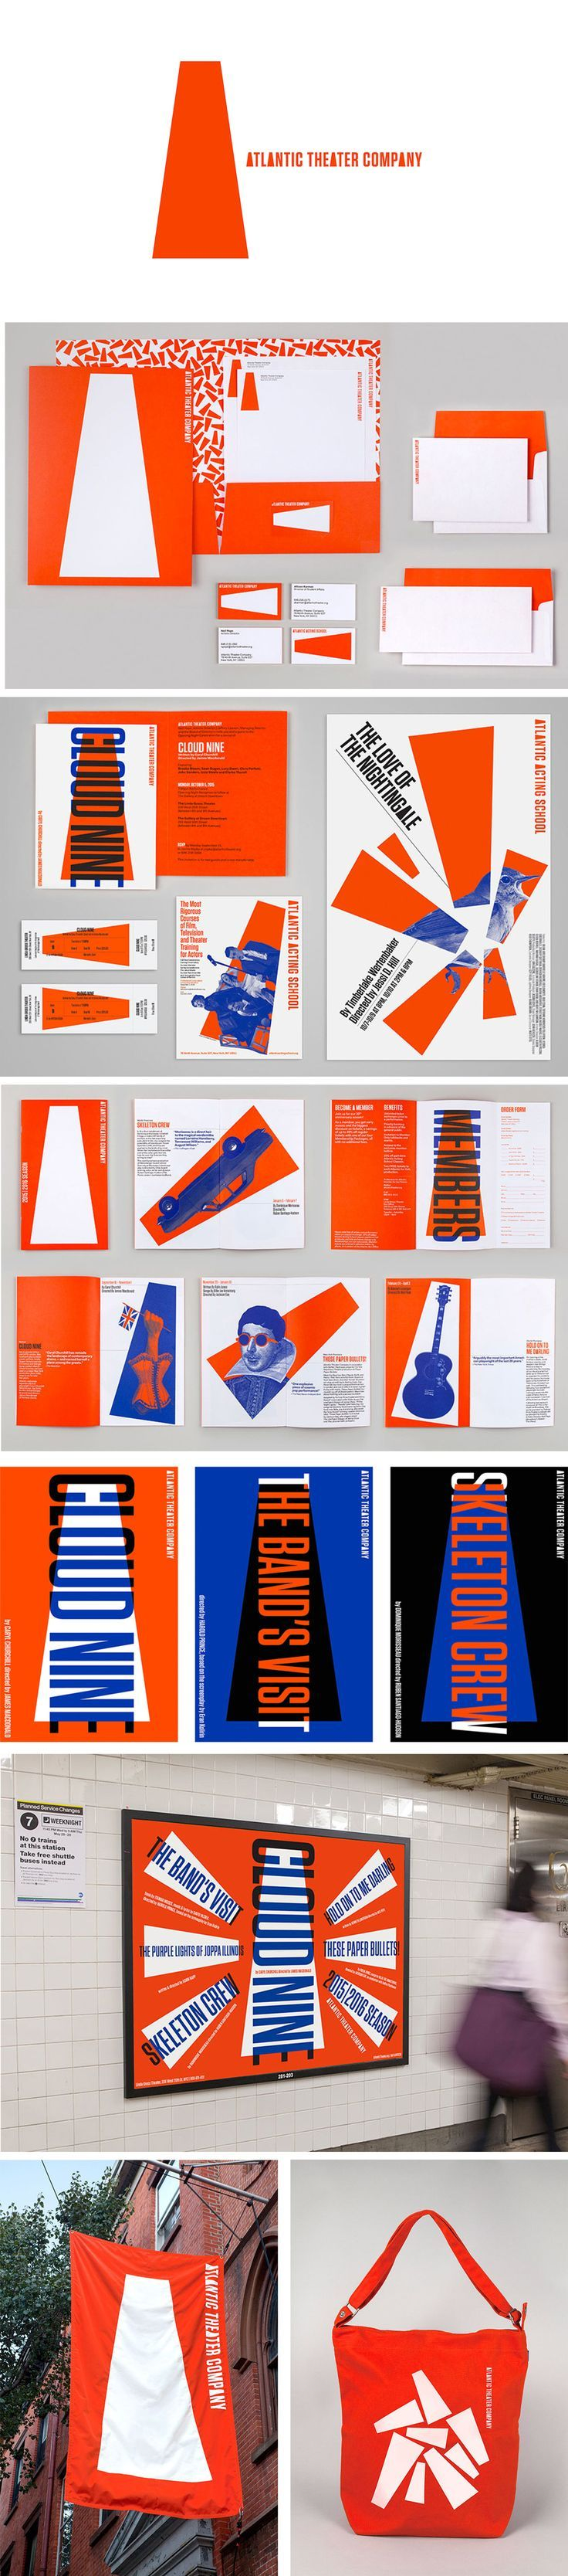 bright and bold branding